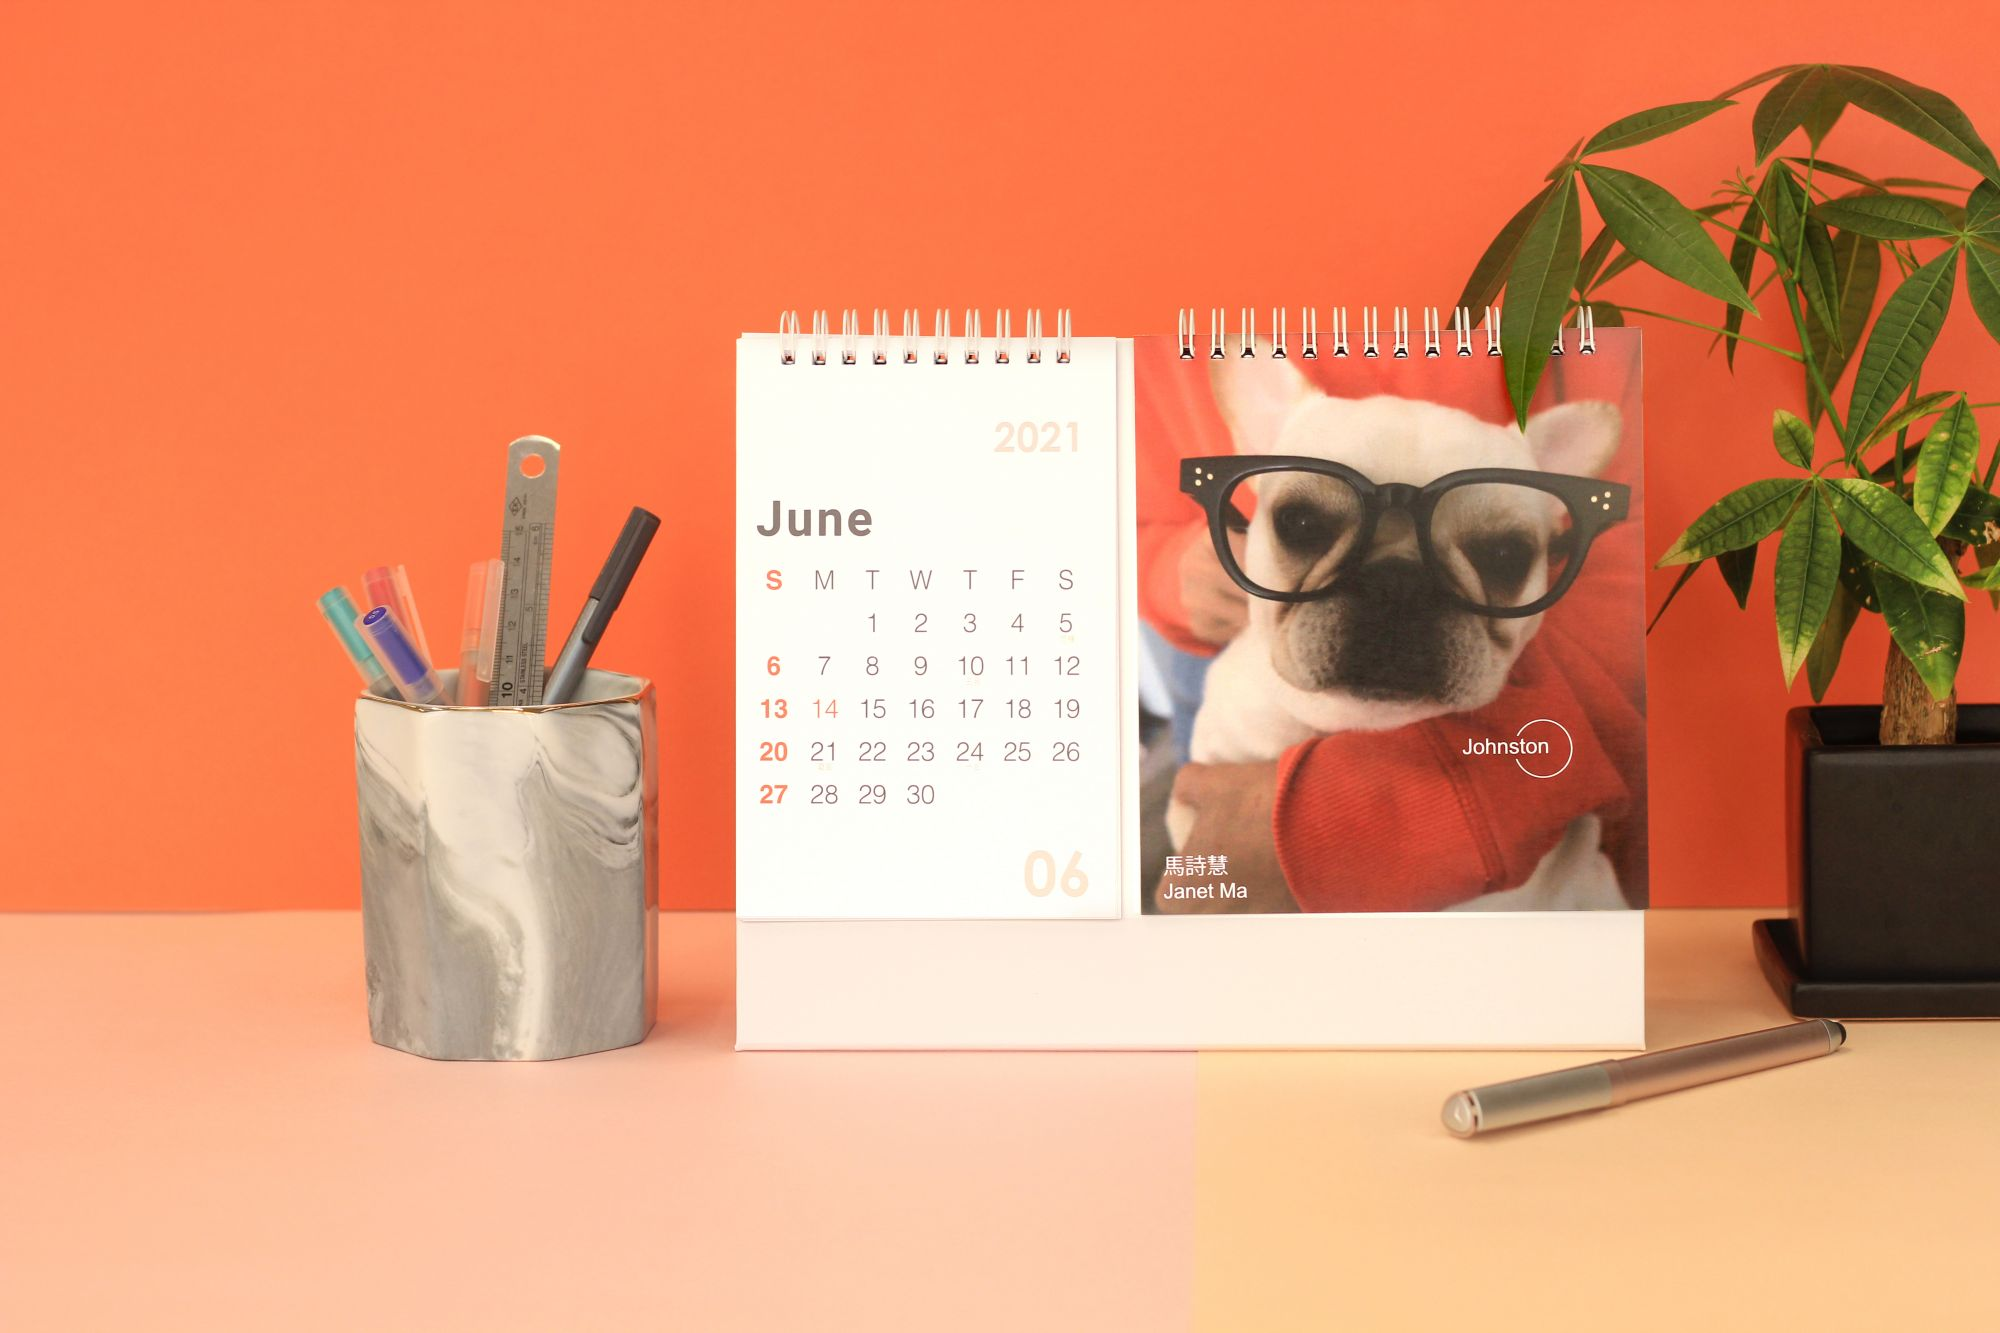 Fawn Over Tatler Friends' Adorable Pets With This Charity Calendar